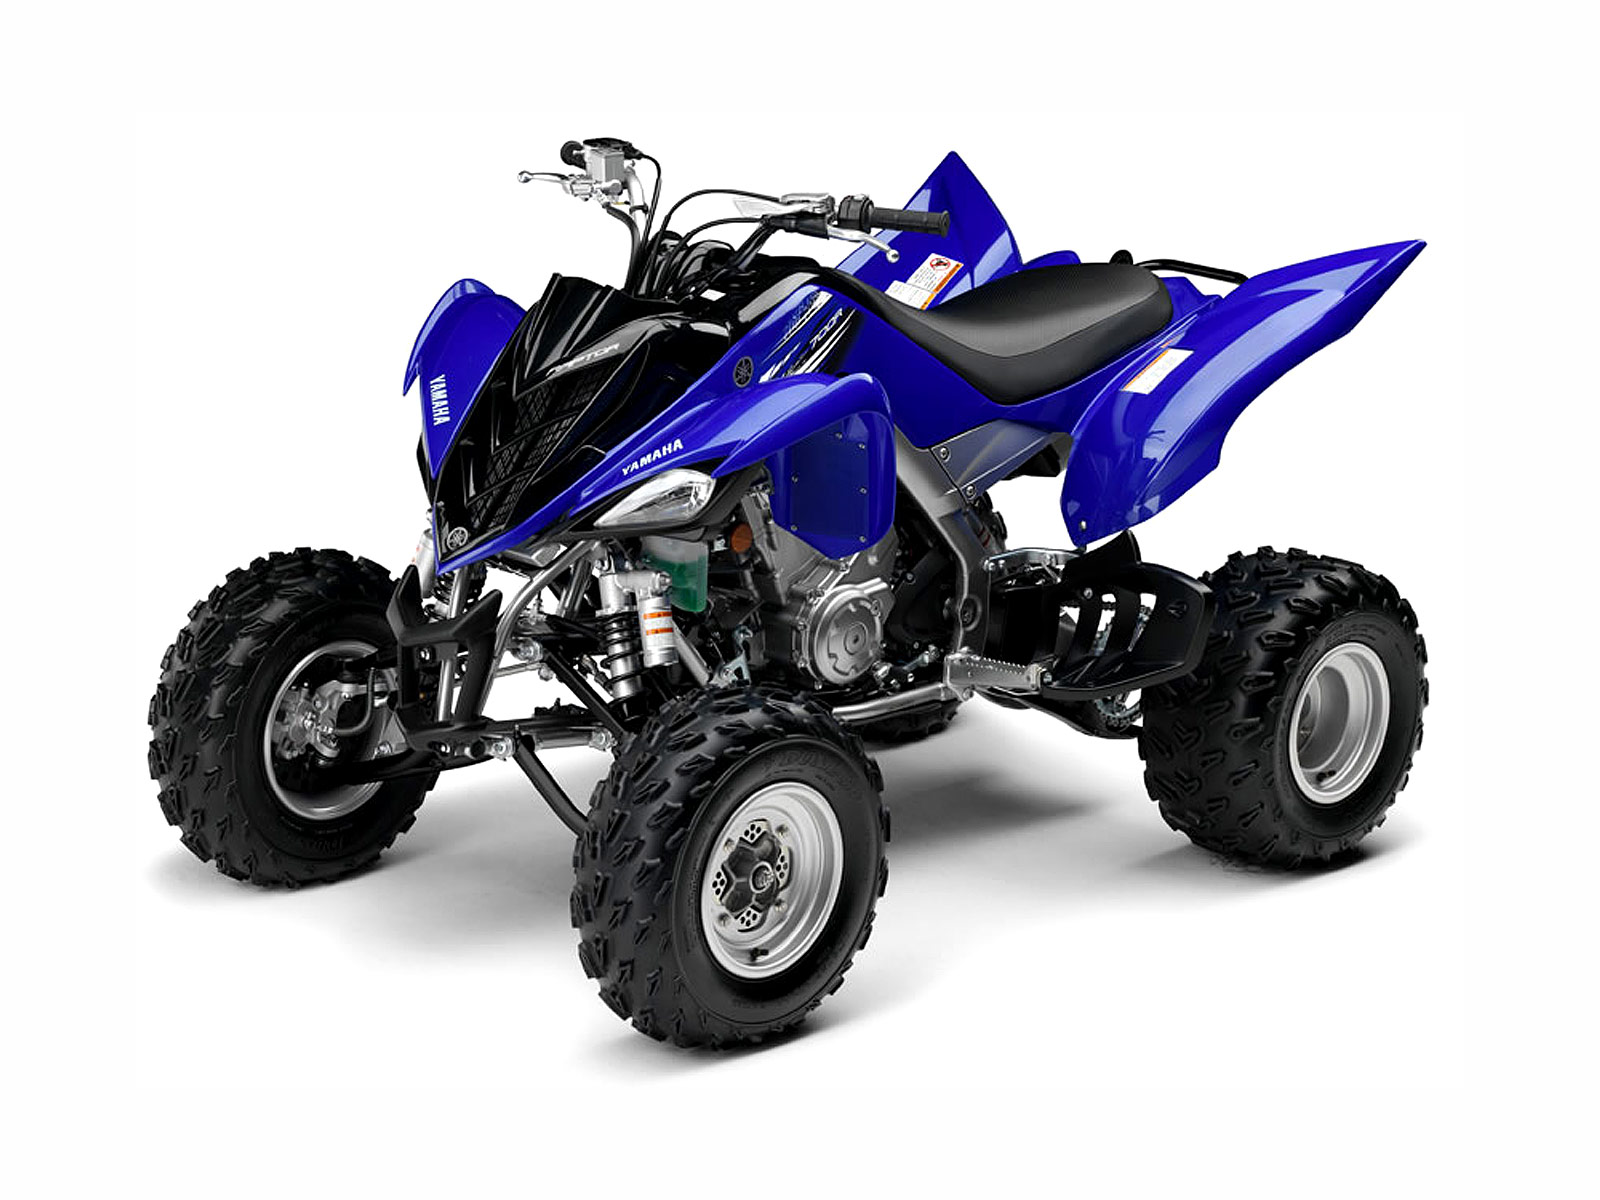 2012 Raptor 700R YAMAHA ATV Wallpapers specifications review